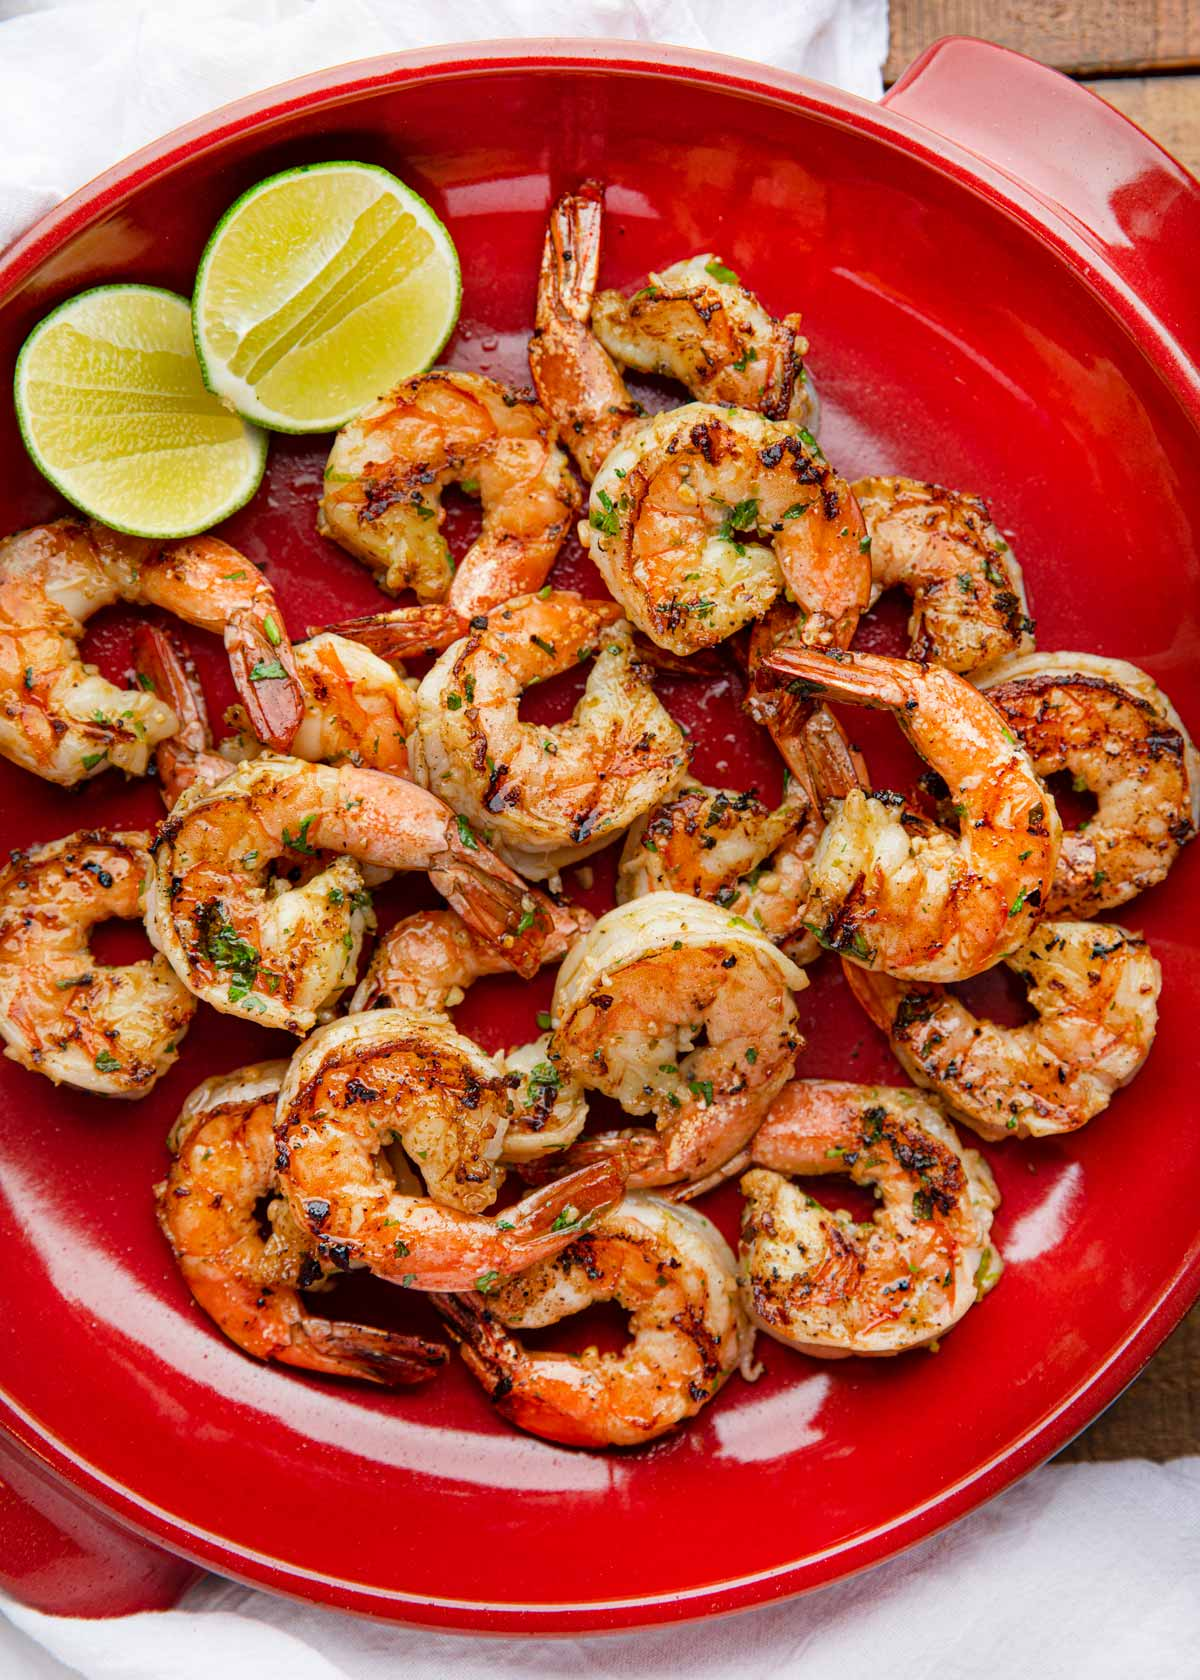 Cilantro Lime Grilled Shrimp on plate